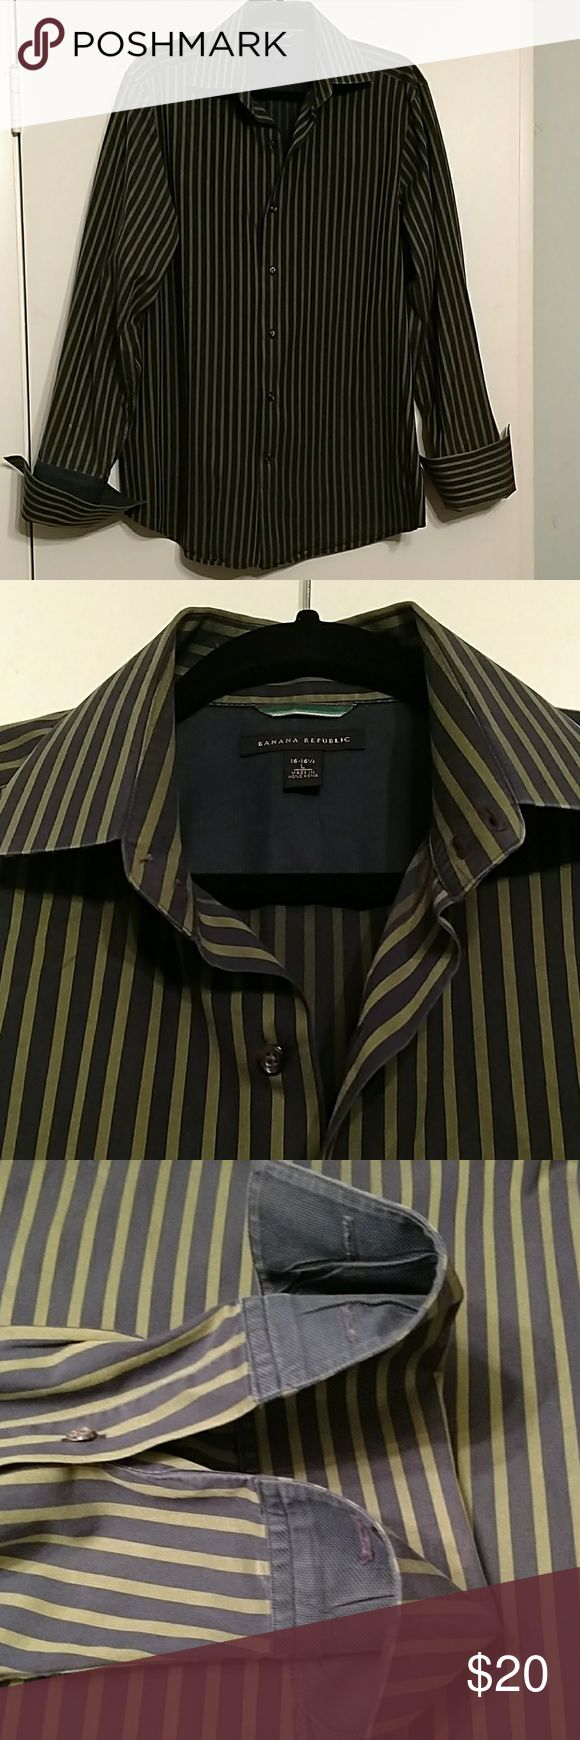 Banana Republic French cuff Navy and green button down with French cuff (cufflinks not included). Size Large 16-16 1/2. Gently worn. Banana Republic Shirts Dress Shirts